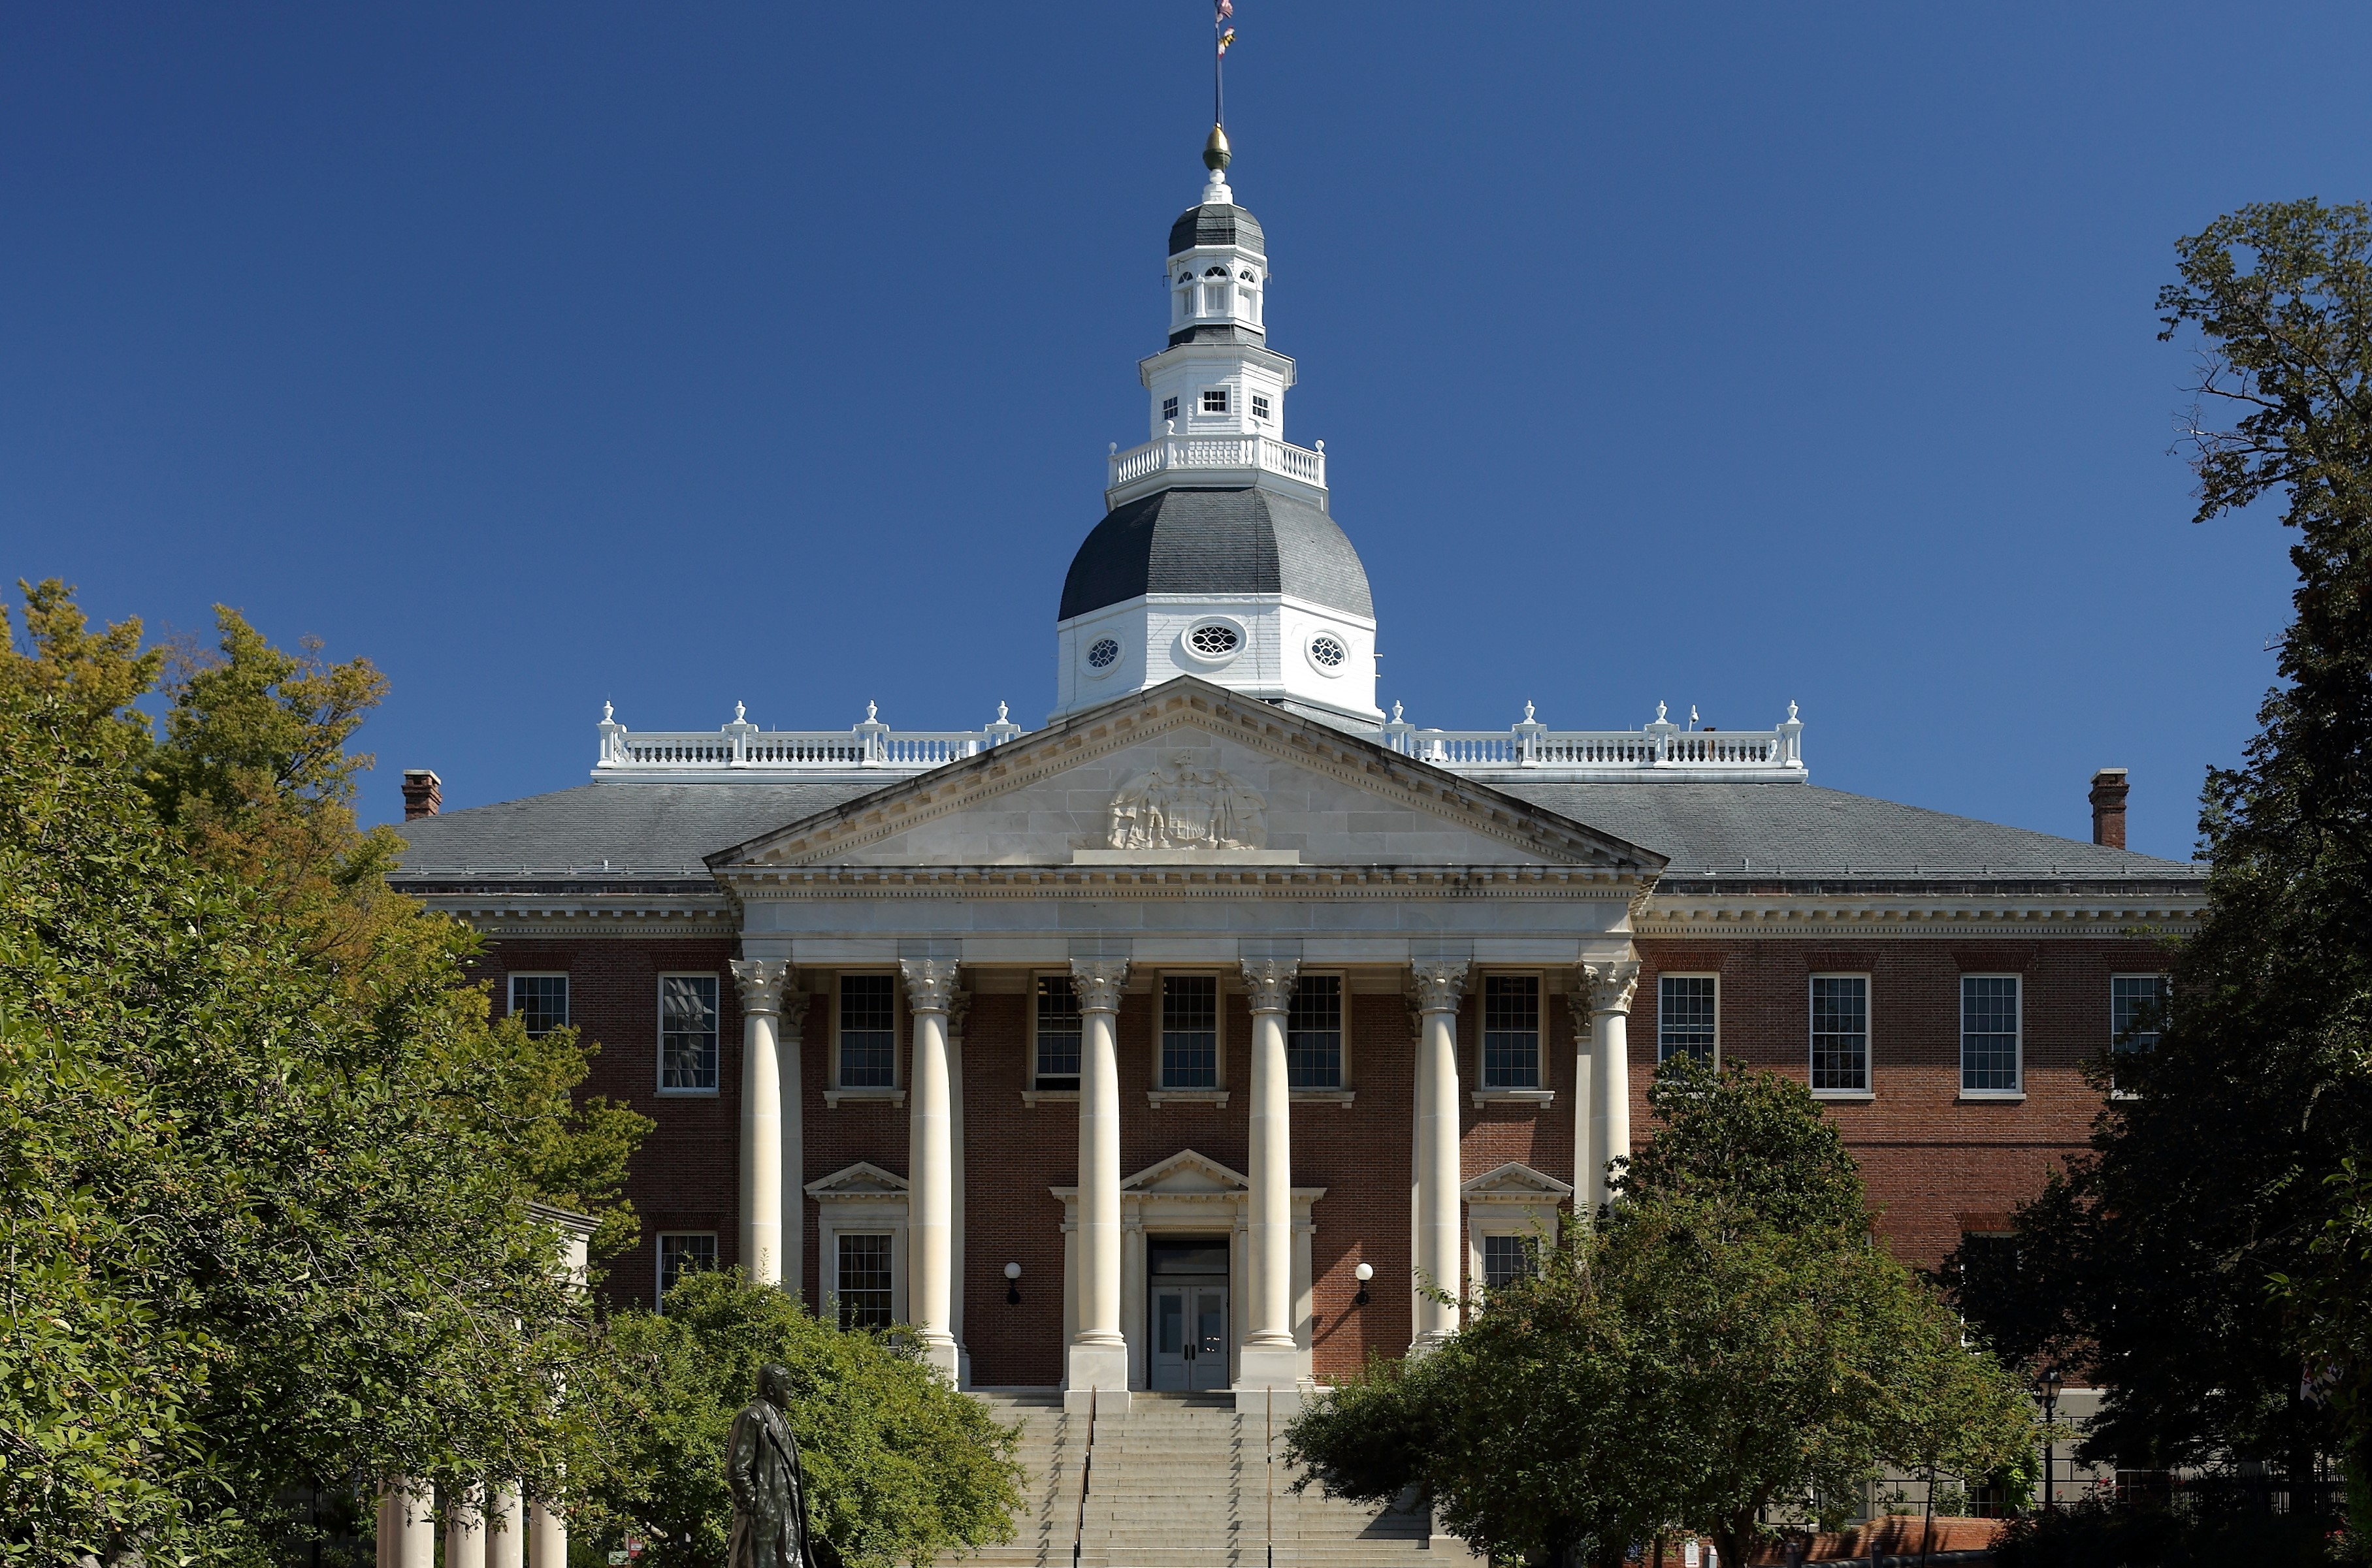 Maryland State House from wikimedia commons